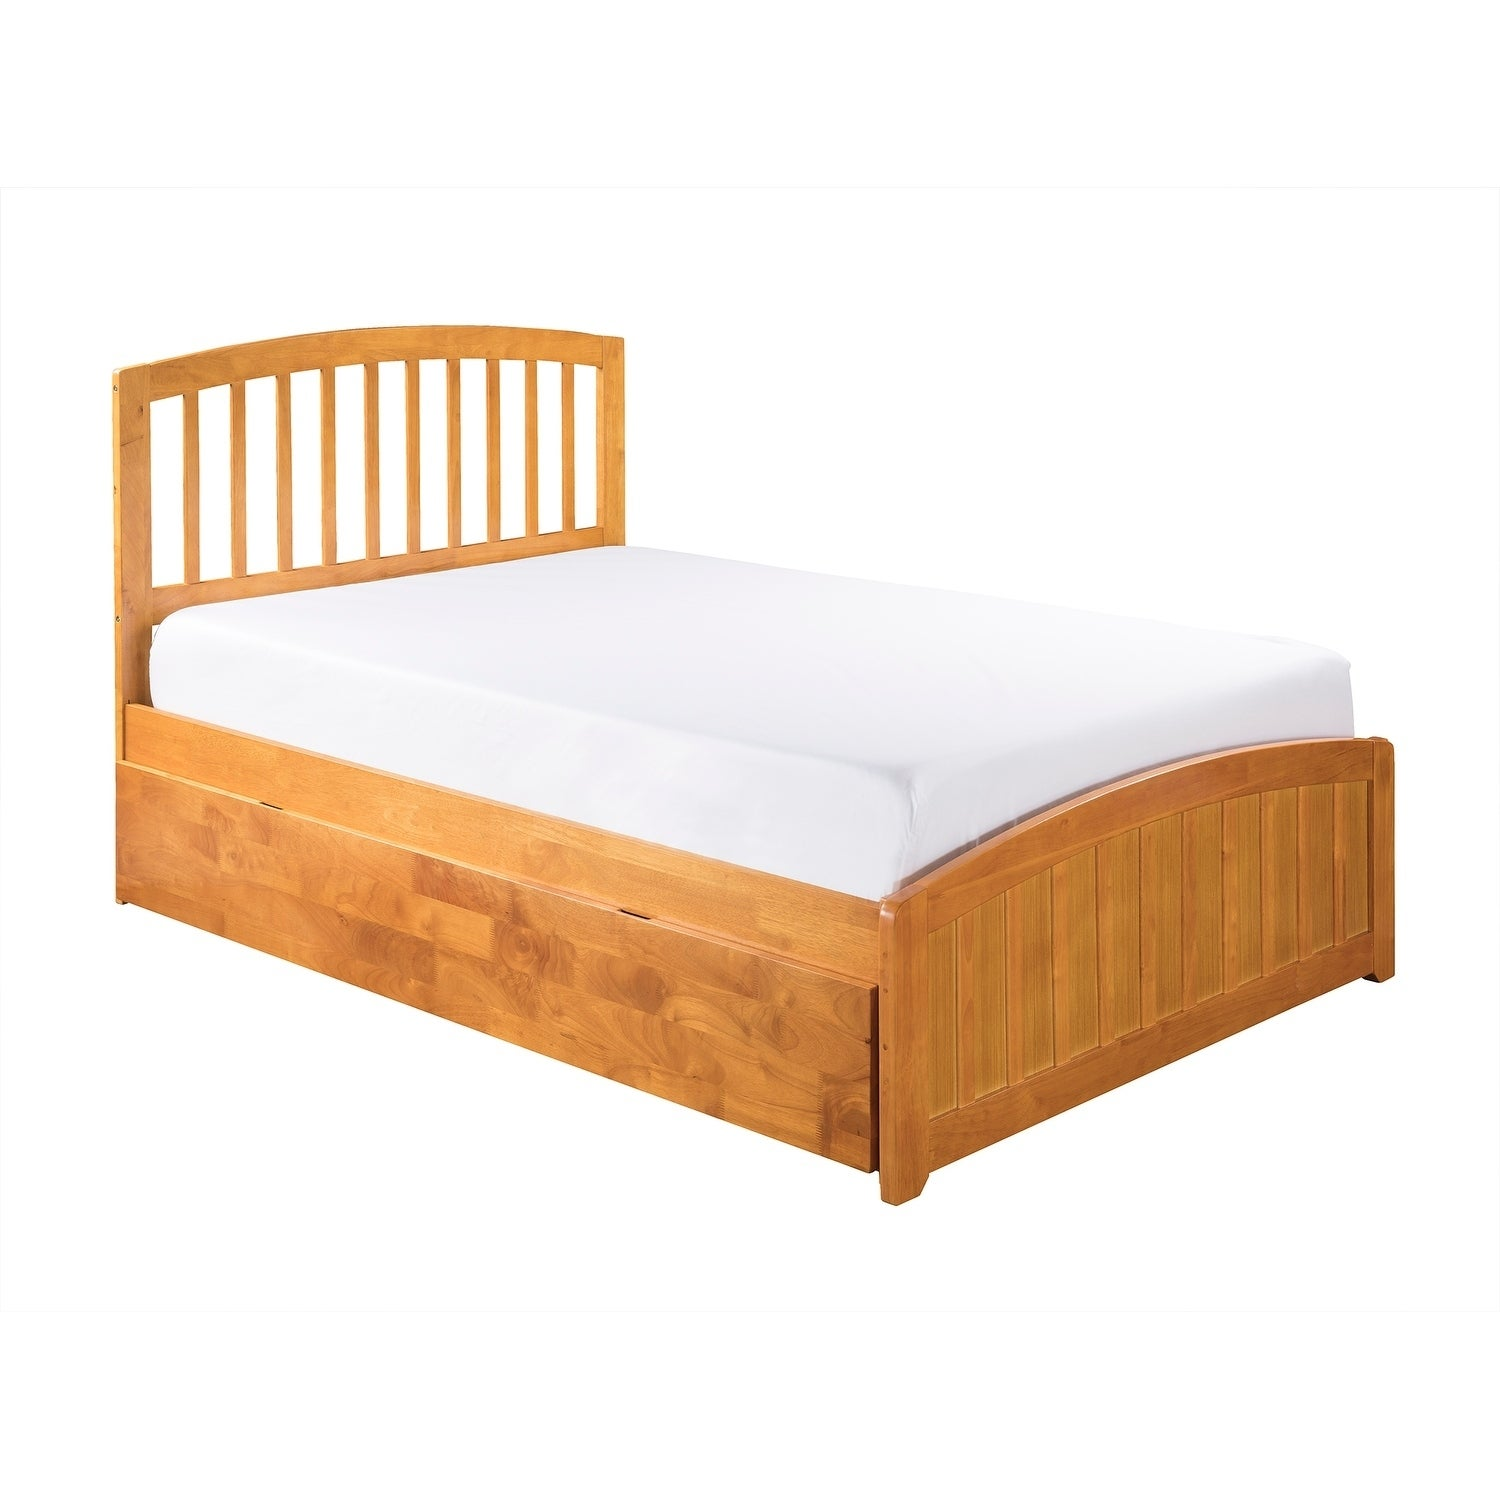 0fb9d081715ca Shop Richmond Full Platform Bed with Matching Foot Board with Twin Size  Urban Trundle Bed in Caramel - On Sale - Free Shipping Today - Overstock -  23129813